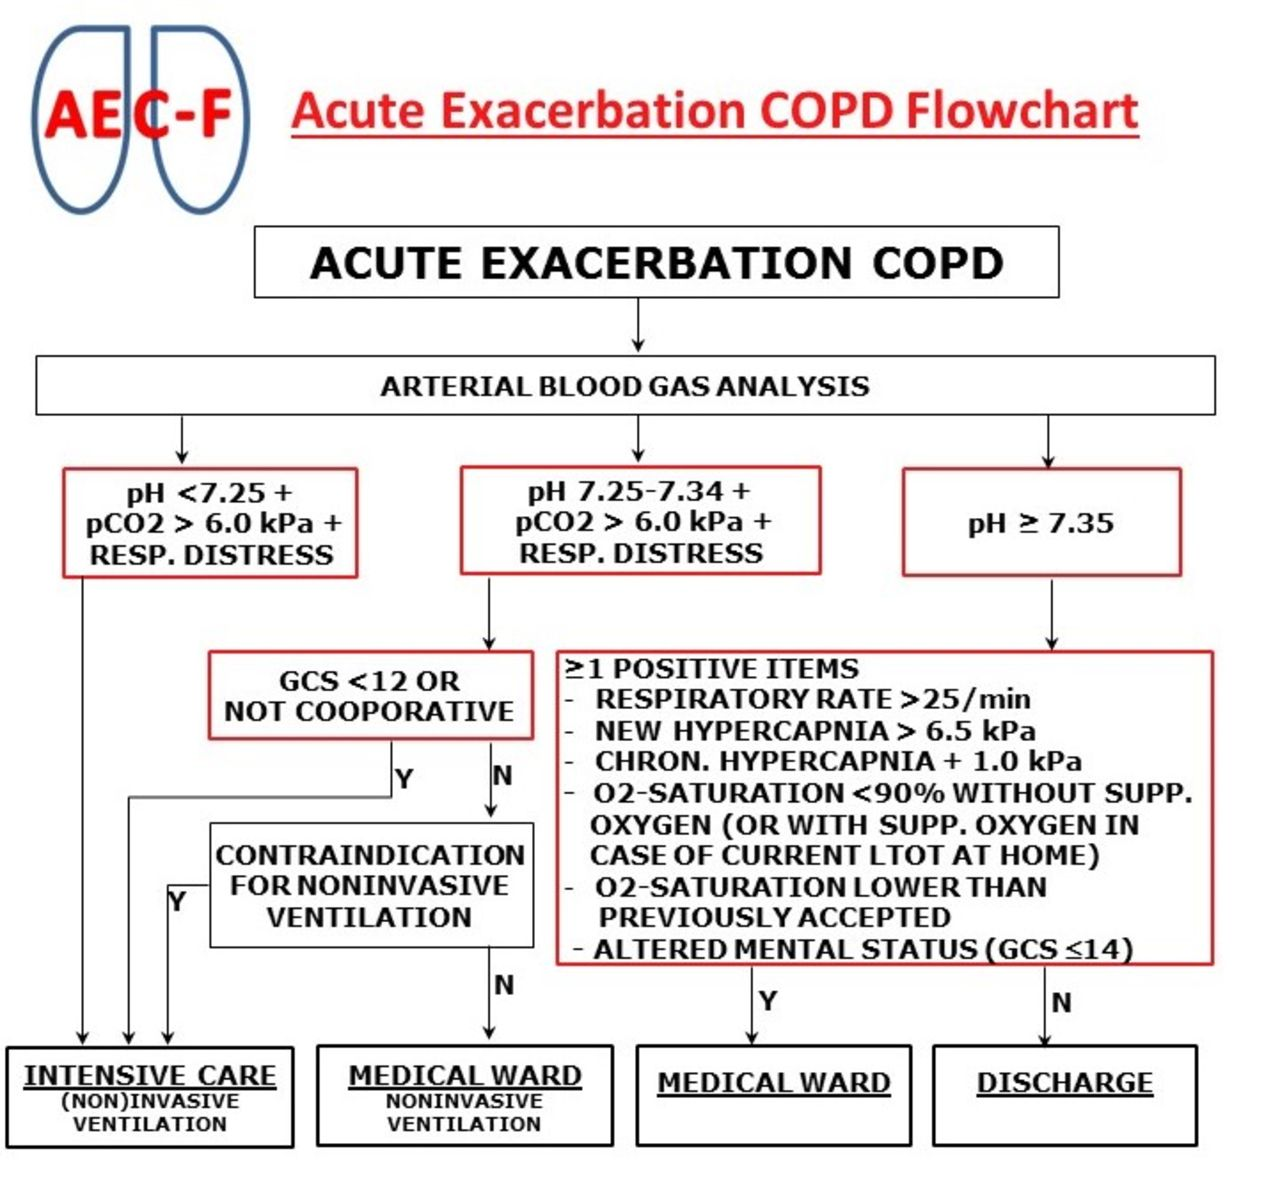 Reduced Aecopd Hospital Admission Rate By Using A Decision Flowchart